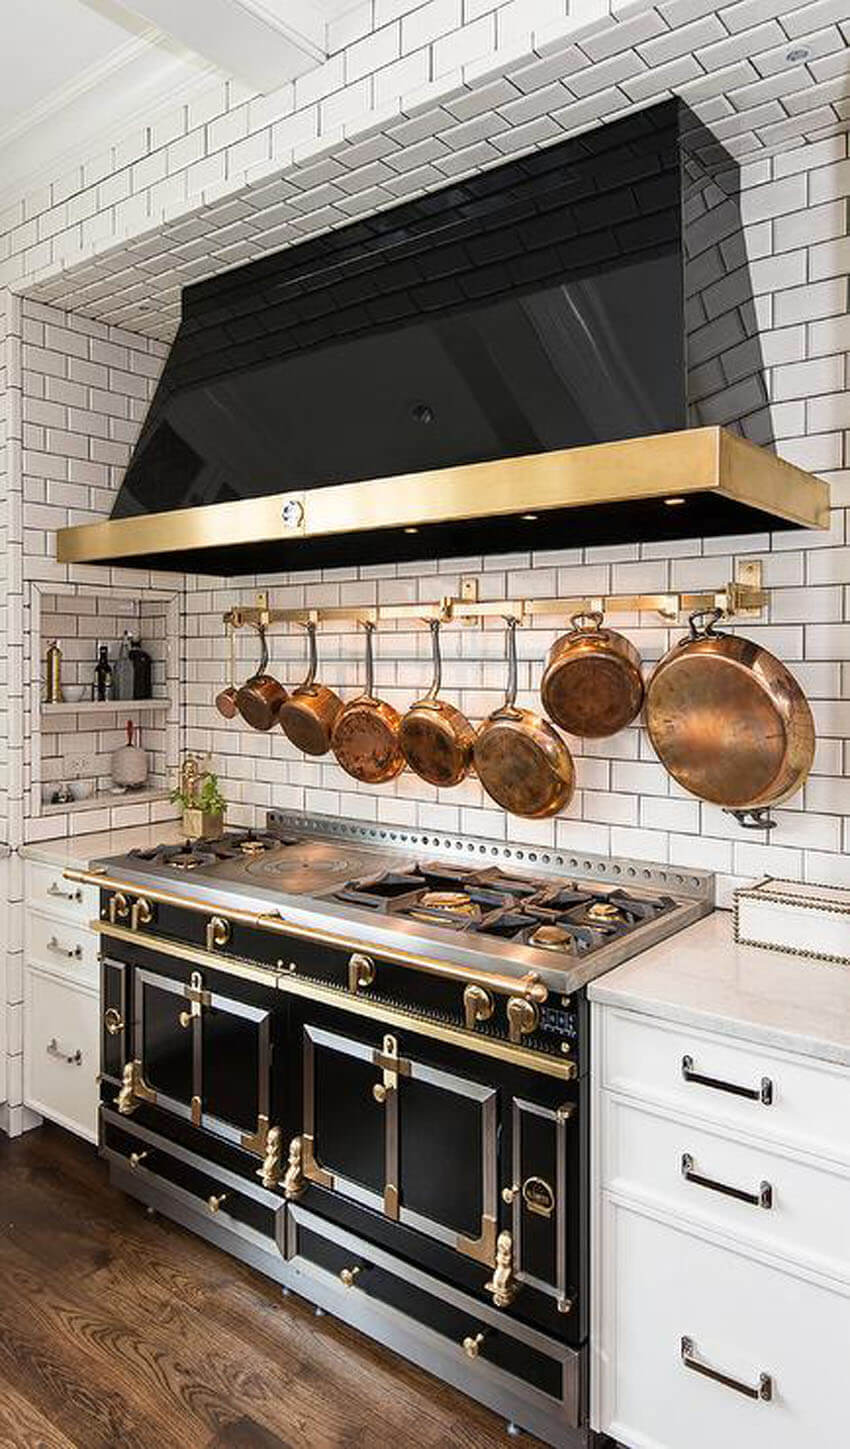 French stove tops are great for the kitchen